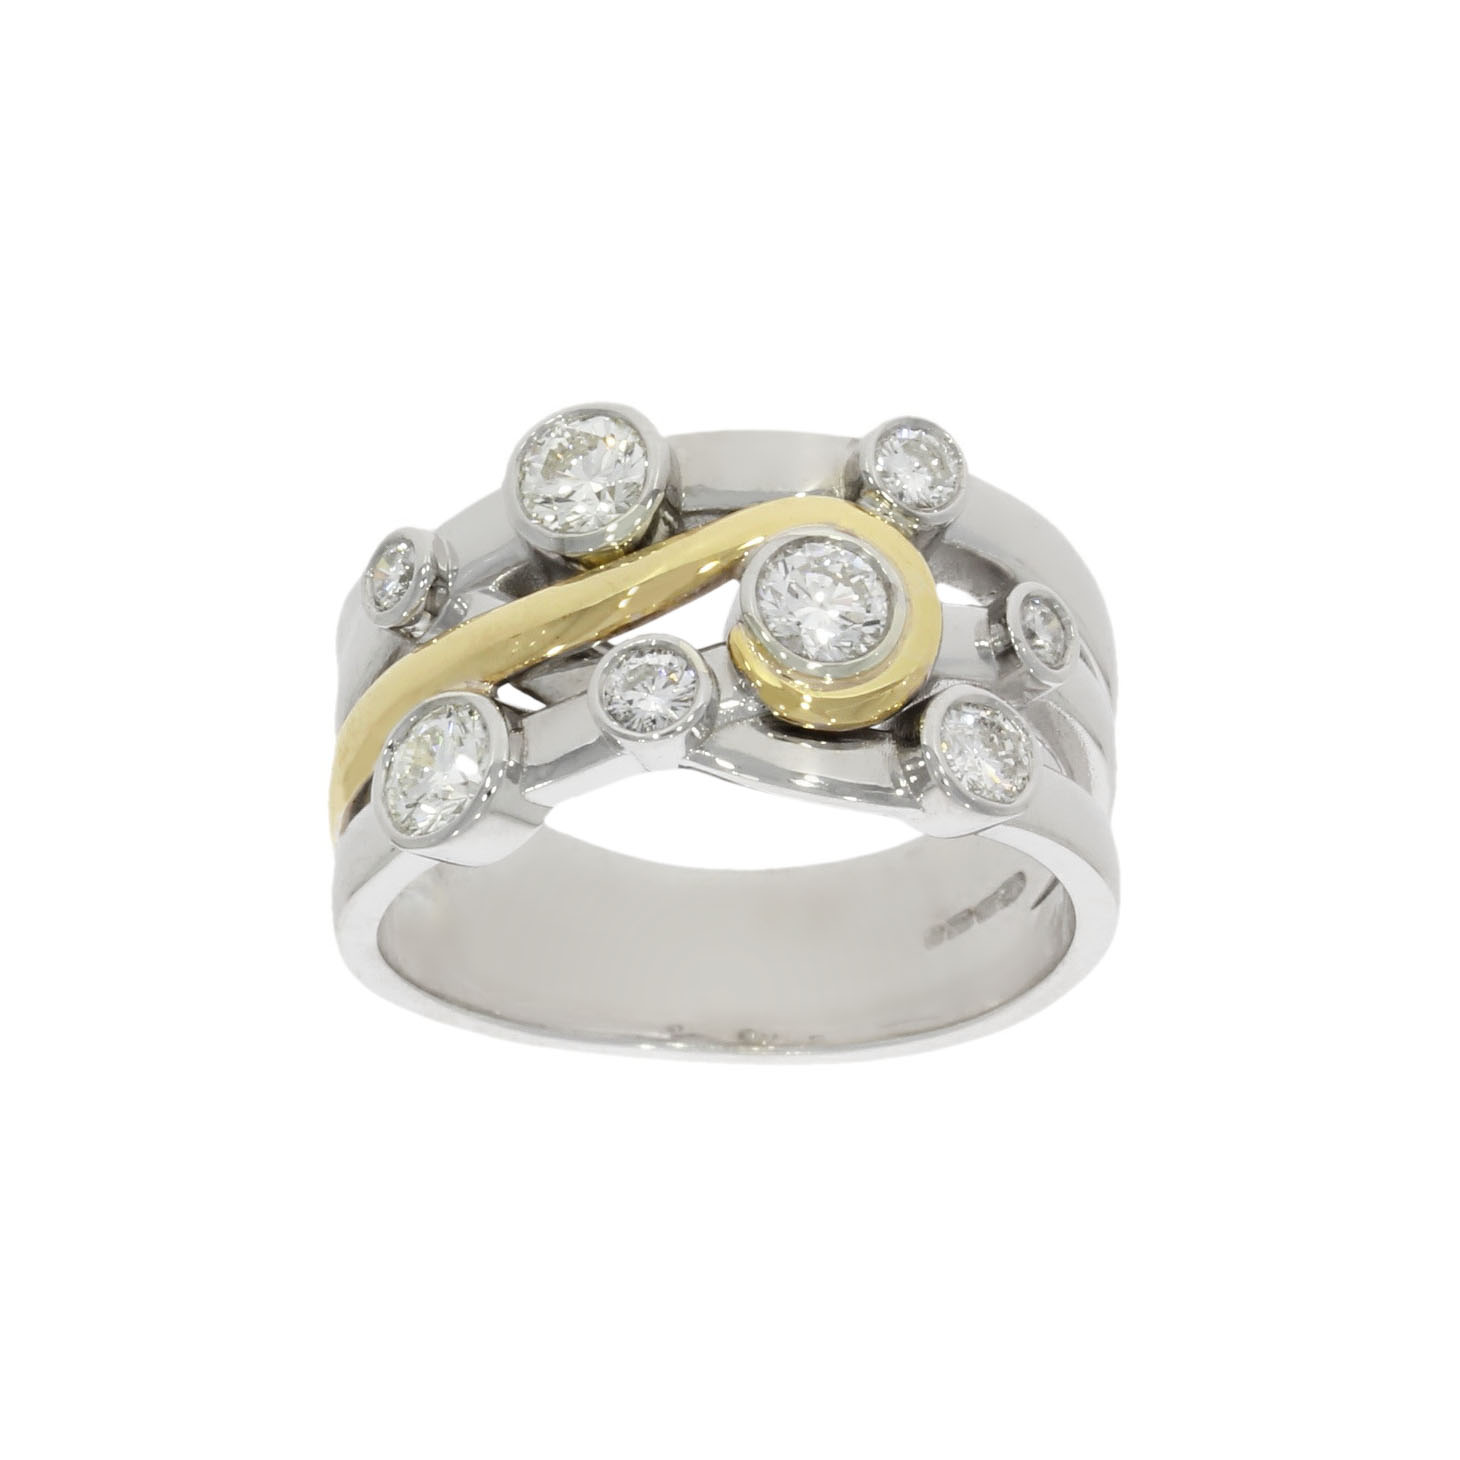 A Wylde jewellers remodel of a 30 year old bridal set in yellow and white gold